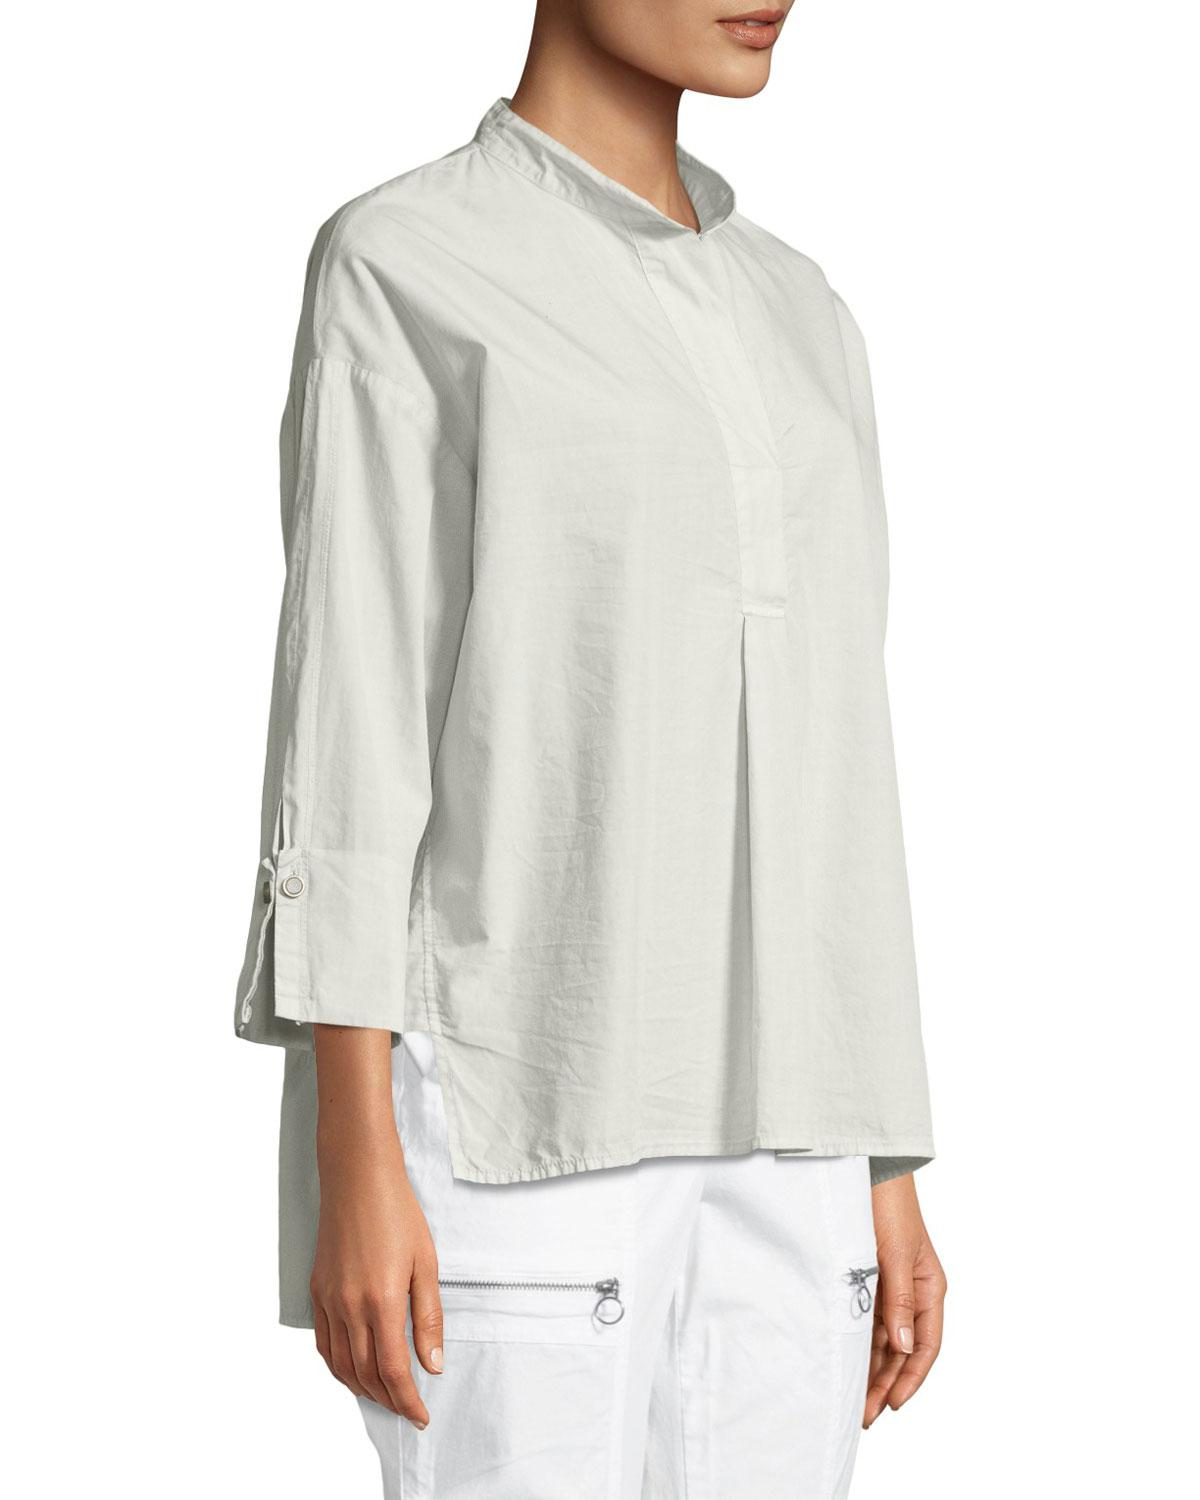 In China Cheap Online Outlet Limited Edition Moa High-Low Cotton/Silk Poplin Blouse Xcvi Cheap 100% Authentic bH6JdSLd